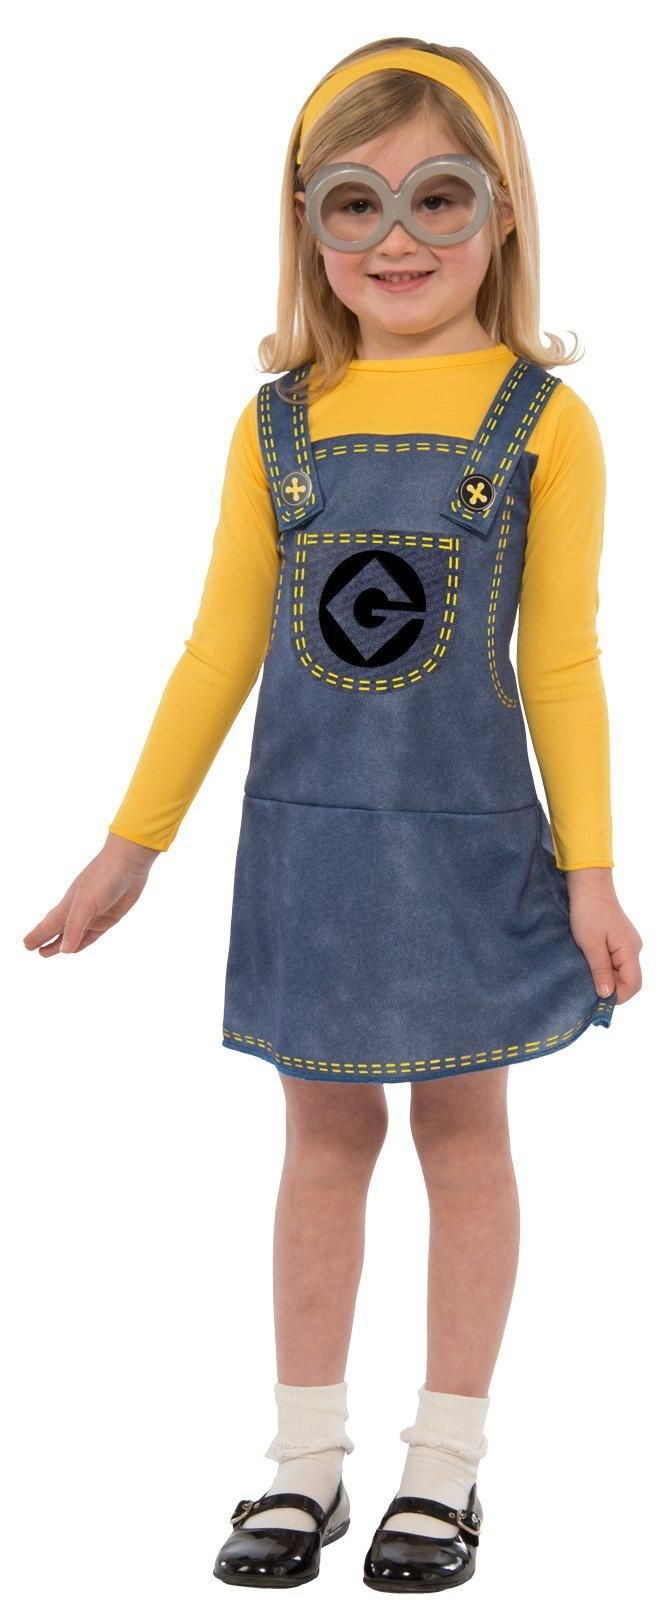 Your little one will have no problem finding the right evil genius to support with this adorable Minions Movie: Girls Minion Costume Kit. Help her make this her own and encourage her creativity by adding unique accessories!